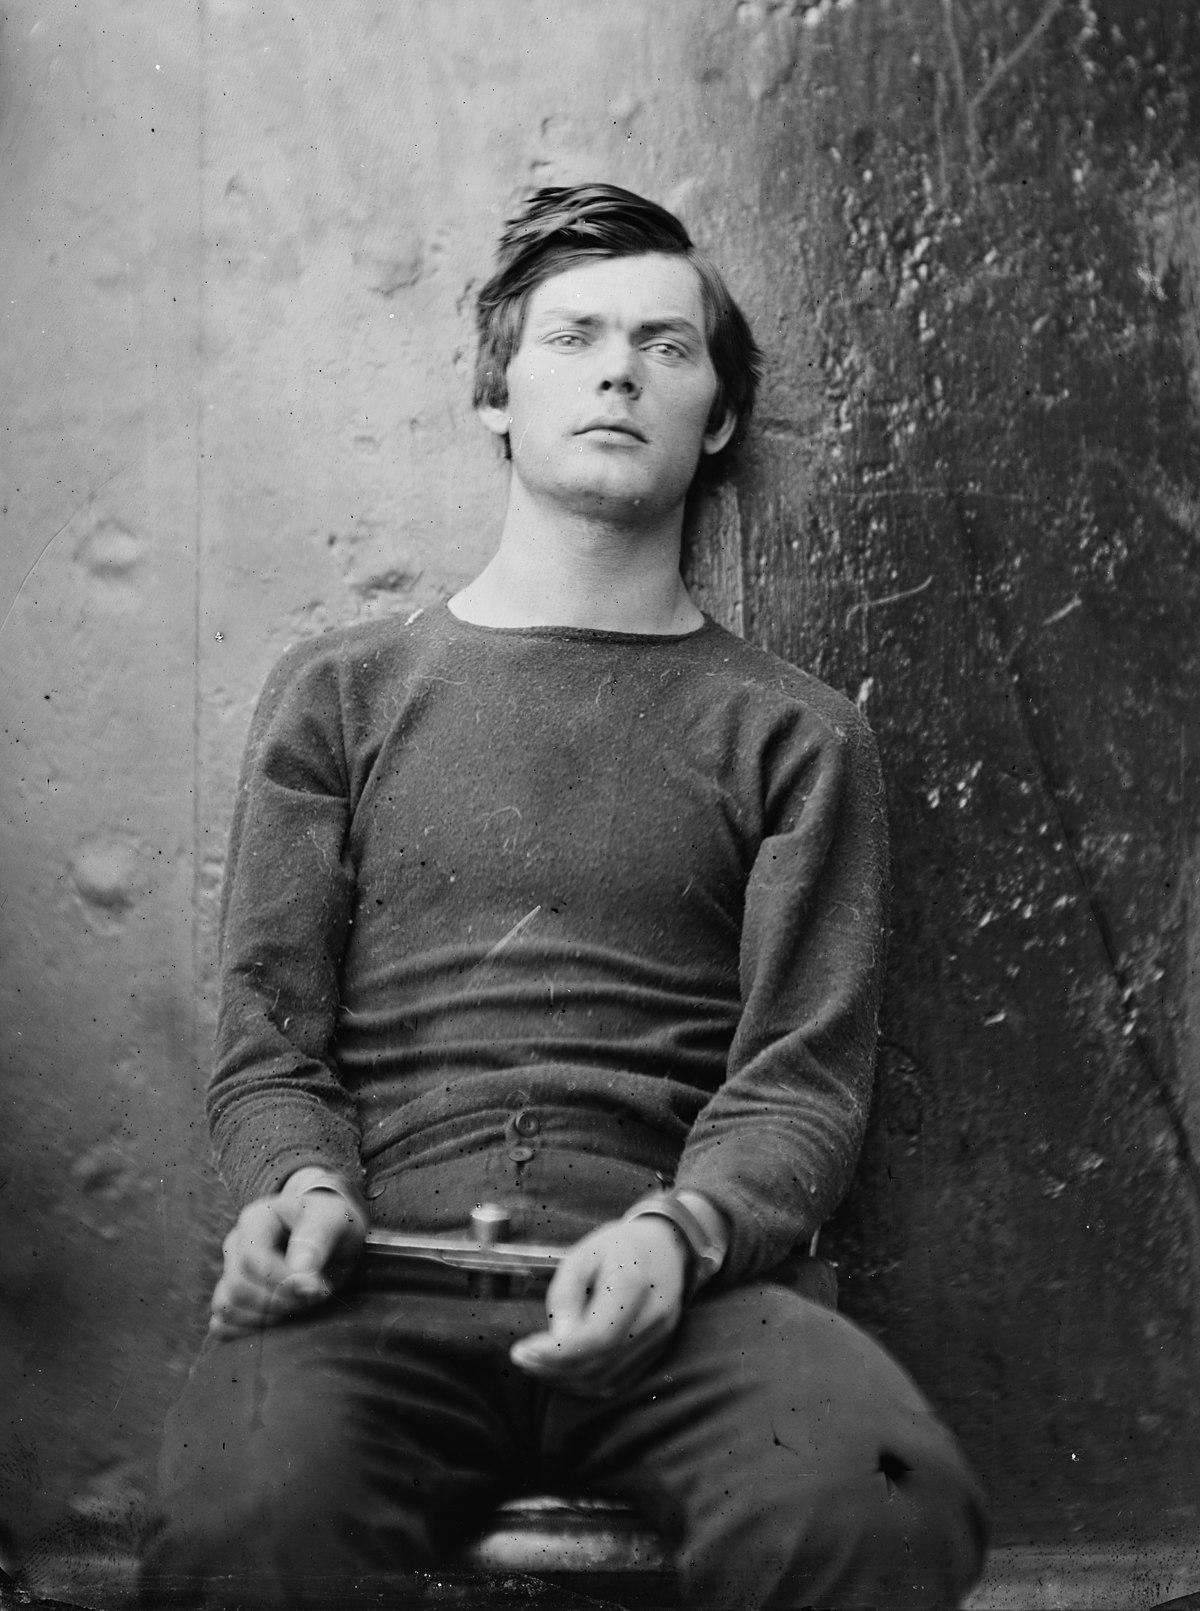 John Punch Lewis : Lewis powell conspirator wikipedia